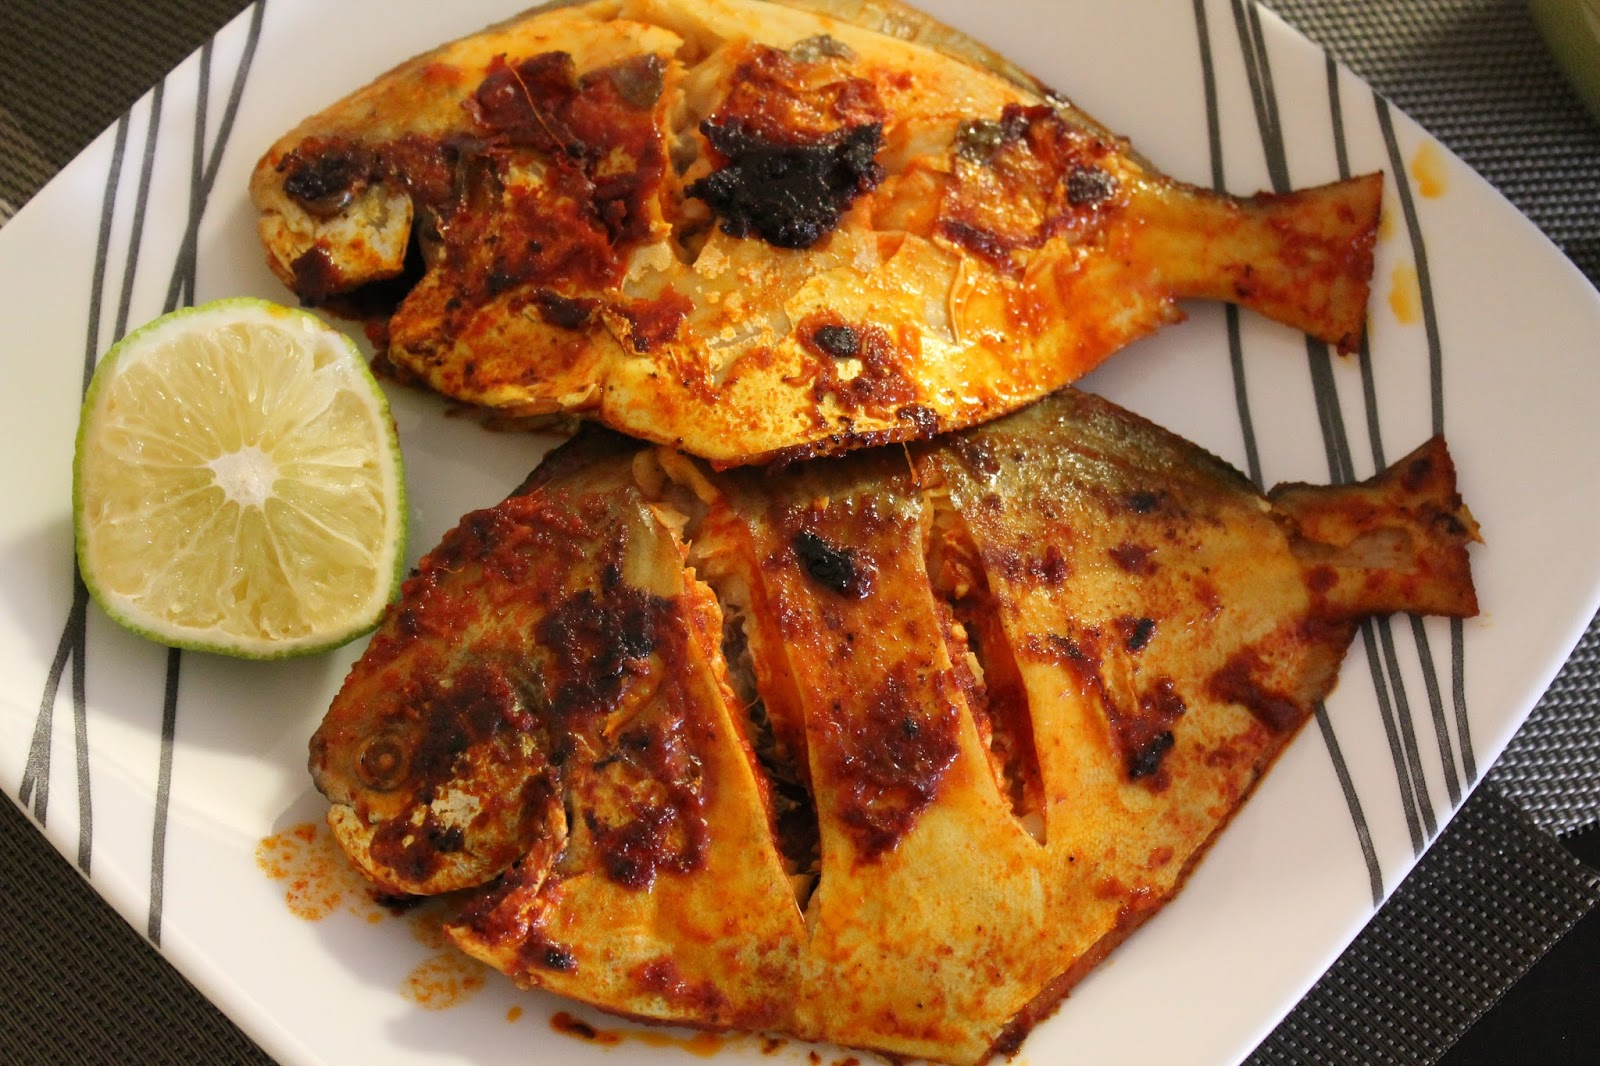 Sumee's Culinary Bites: Baked Whole Black Pomfret